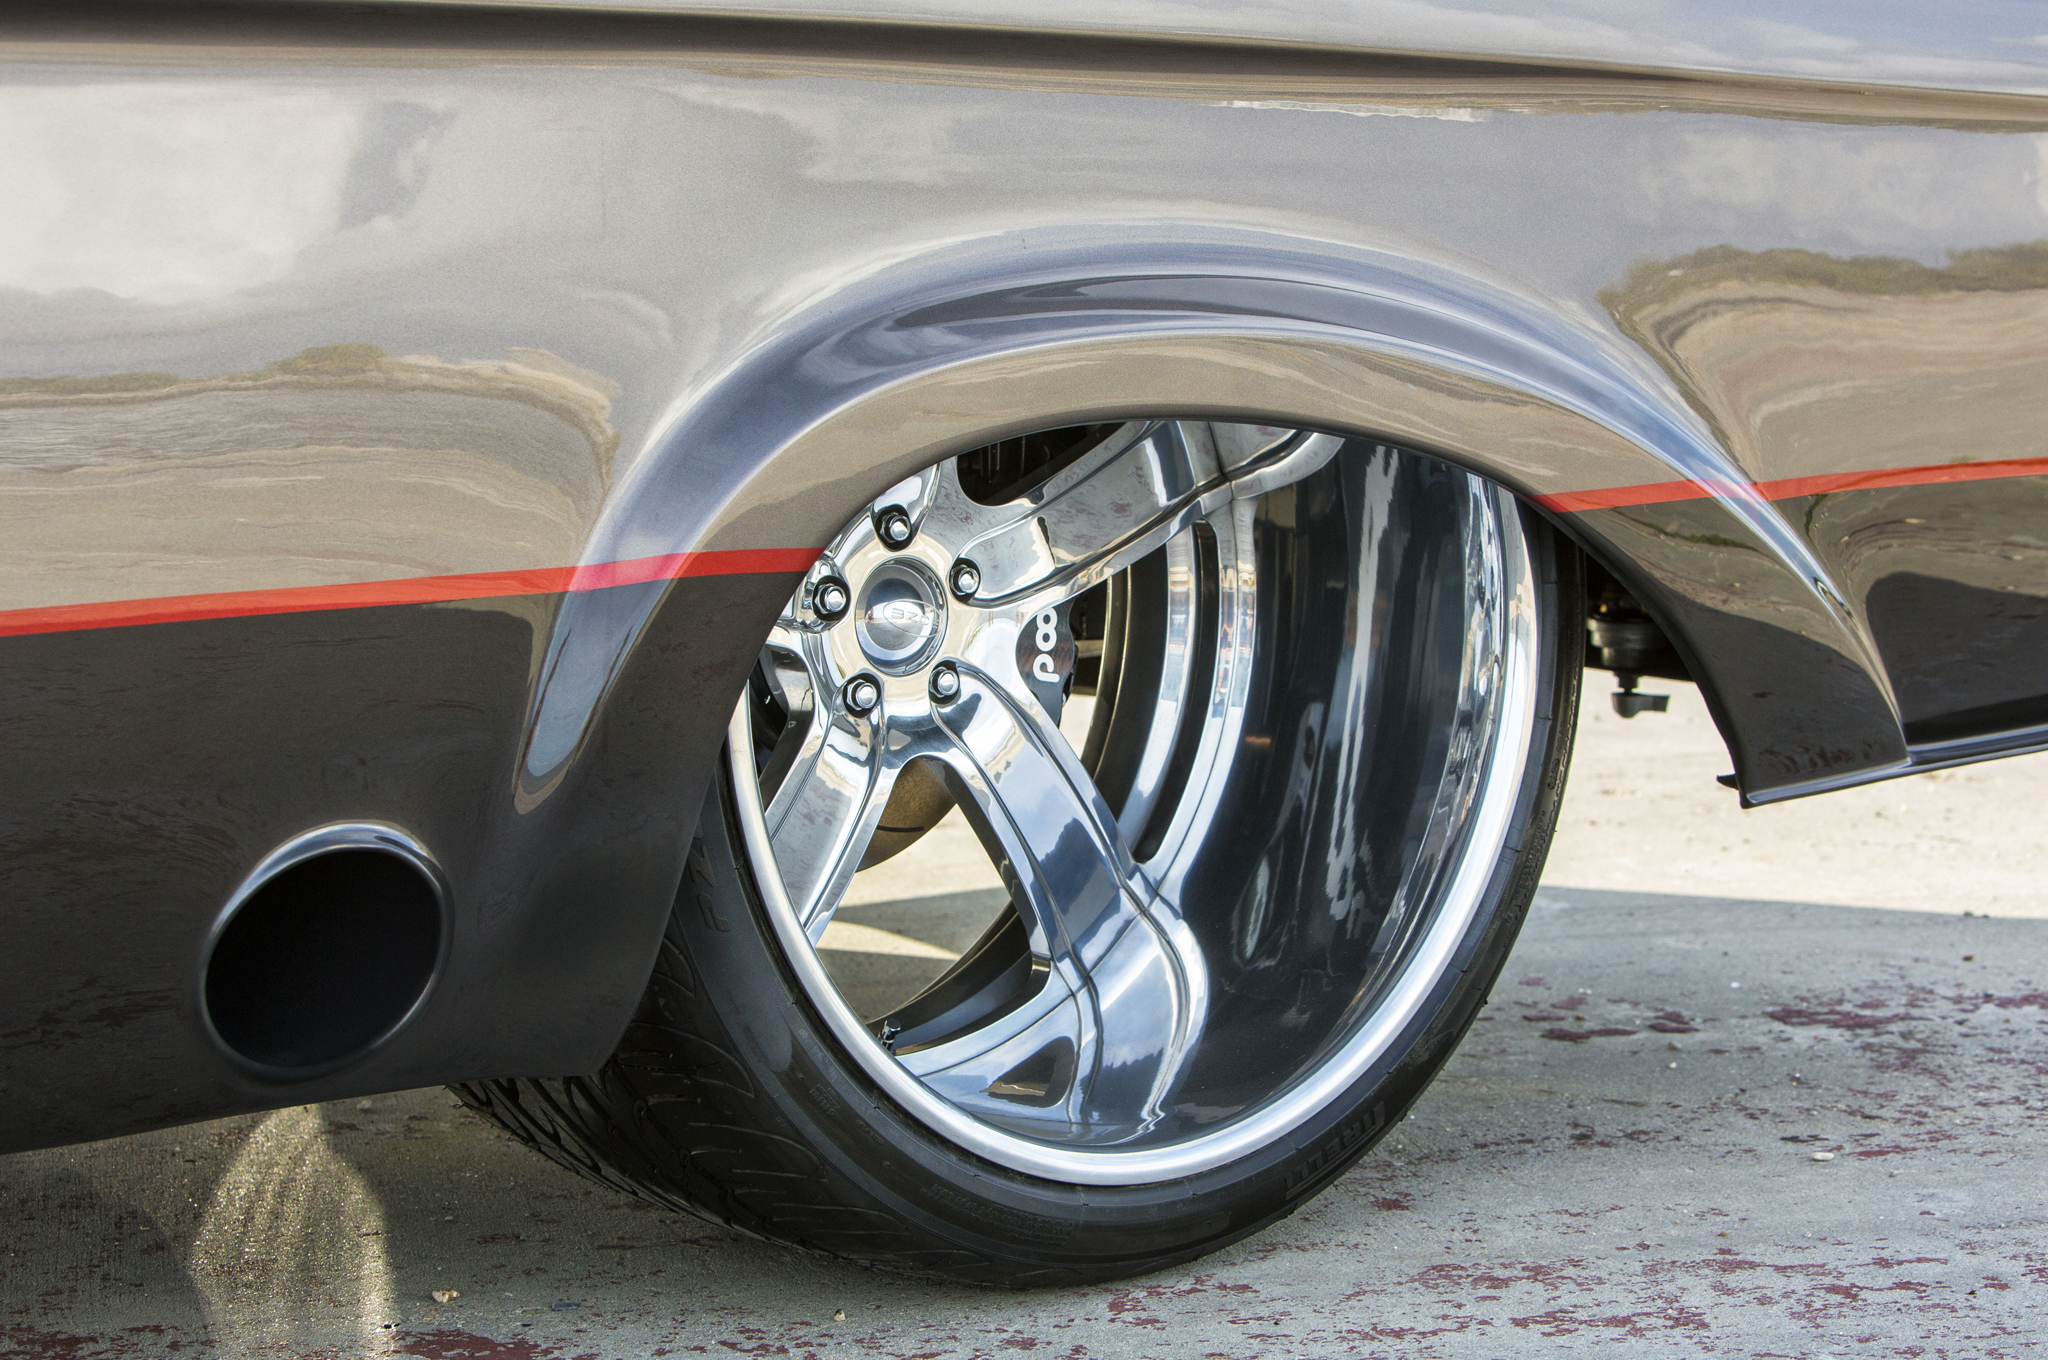 24x15-inch Boze Forged wheels wear 405mm-wide Pirelli rubber. After turning the compound turbos, exhaust is routed through 4-inch Flowmaster exhaust into 5-inch tips that exit just ahead of the real wheels.